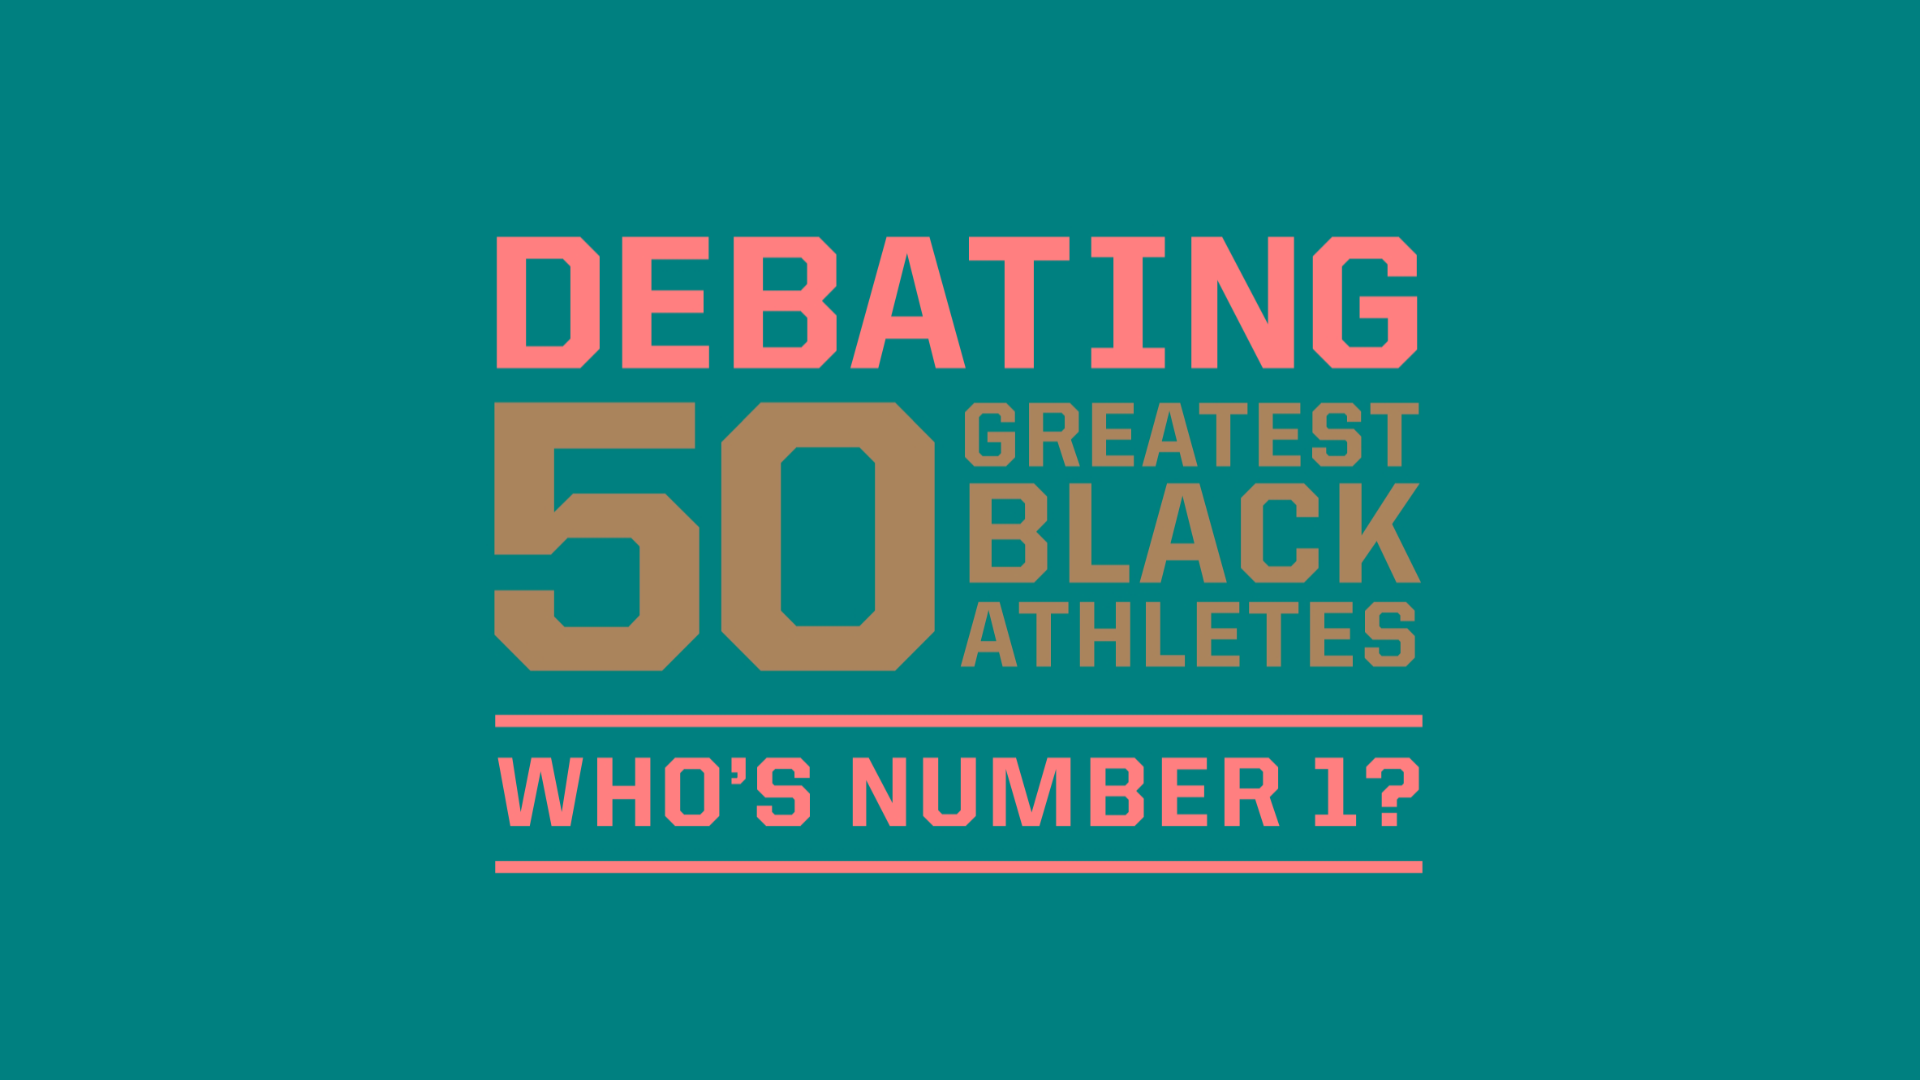 12103a070b51fb 50 Greatest Black Athletes debate  Who s number 1